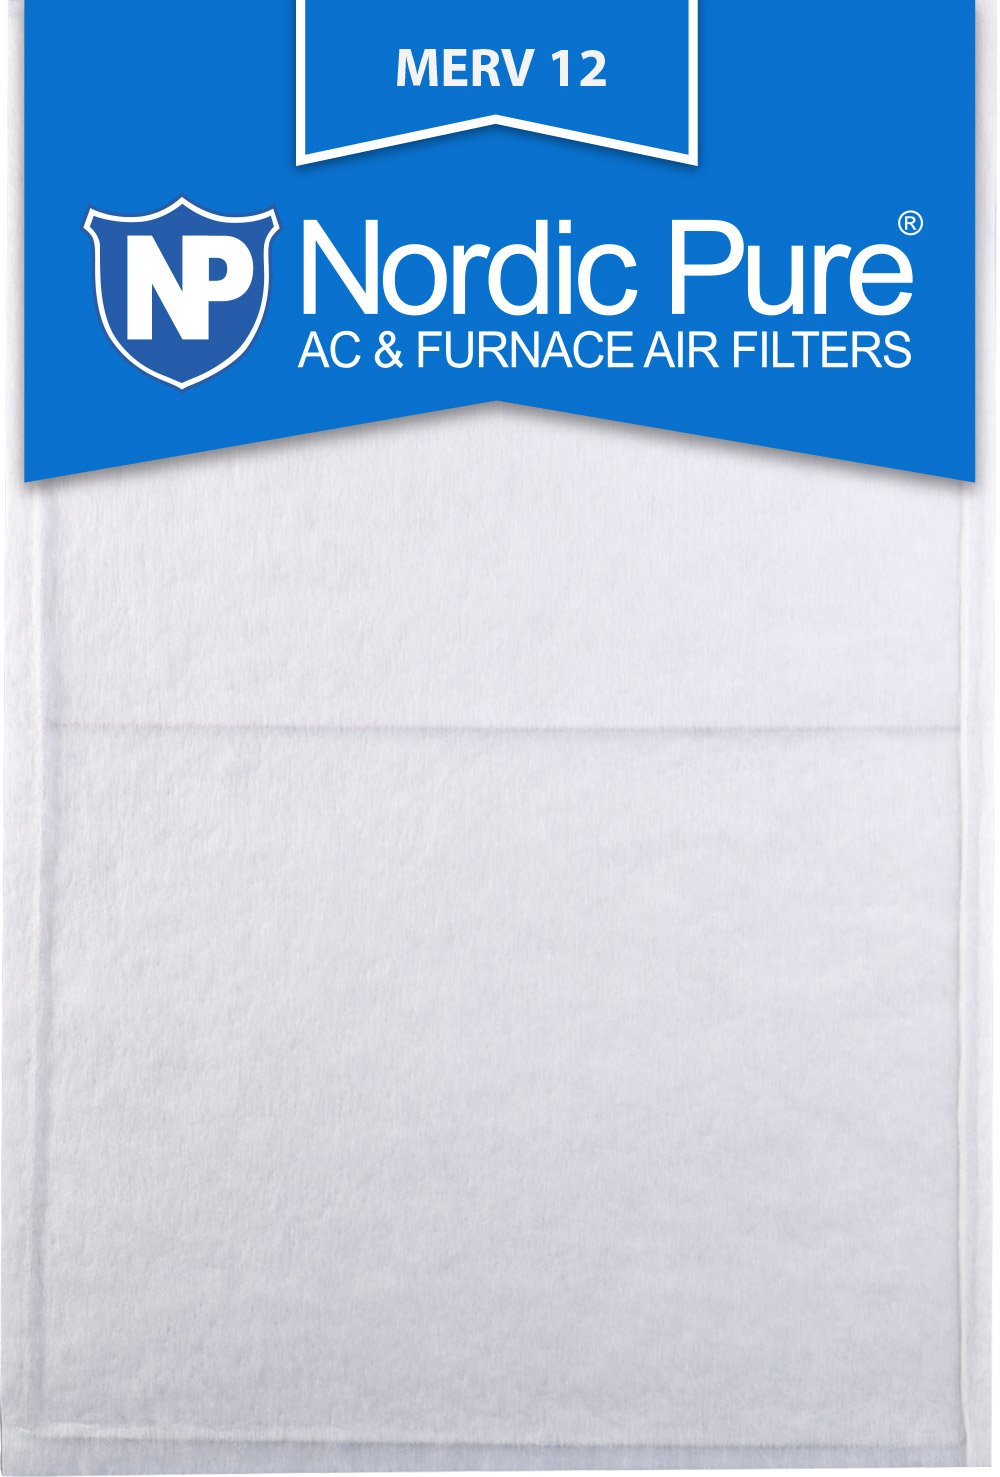 Nordic Pure 10x24x1 Exact MERV 11 Pleated AC Furnace Air Filters 2 Pack